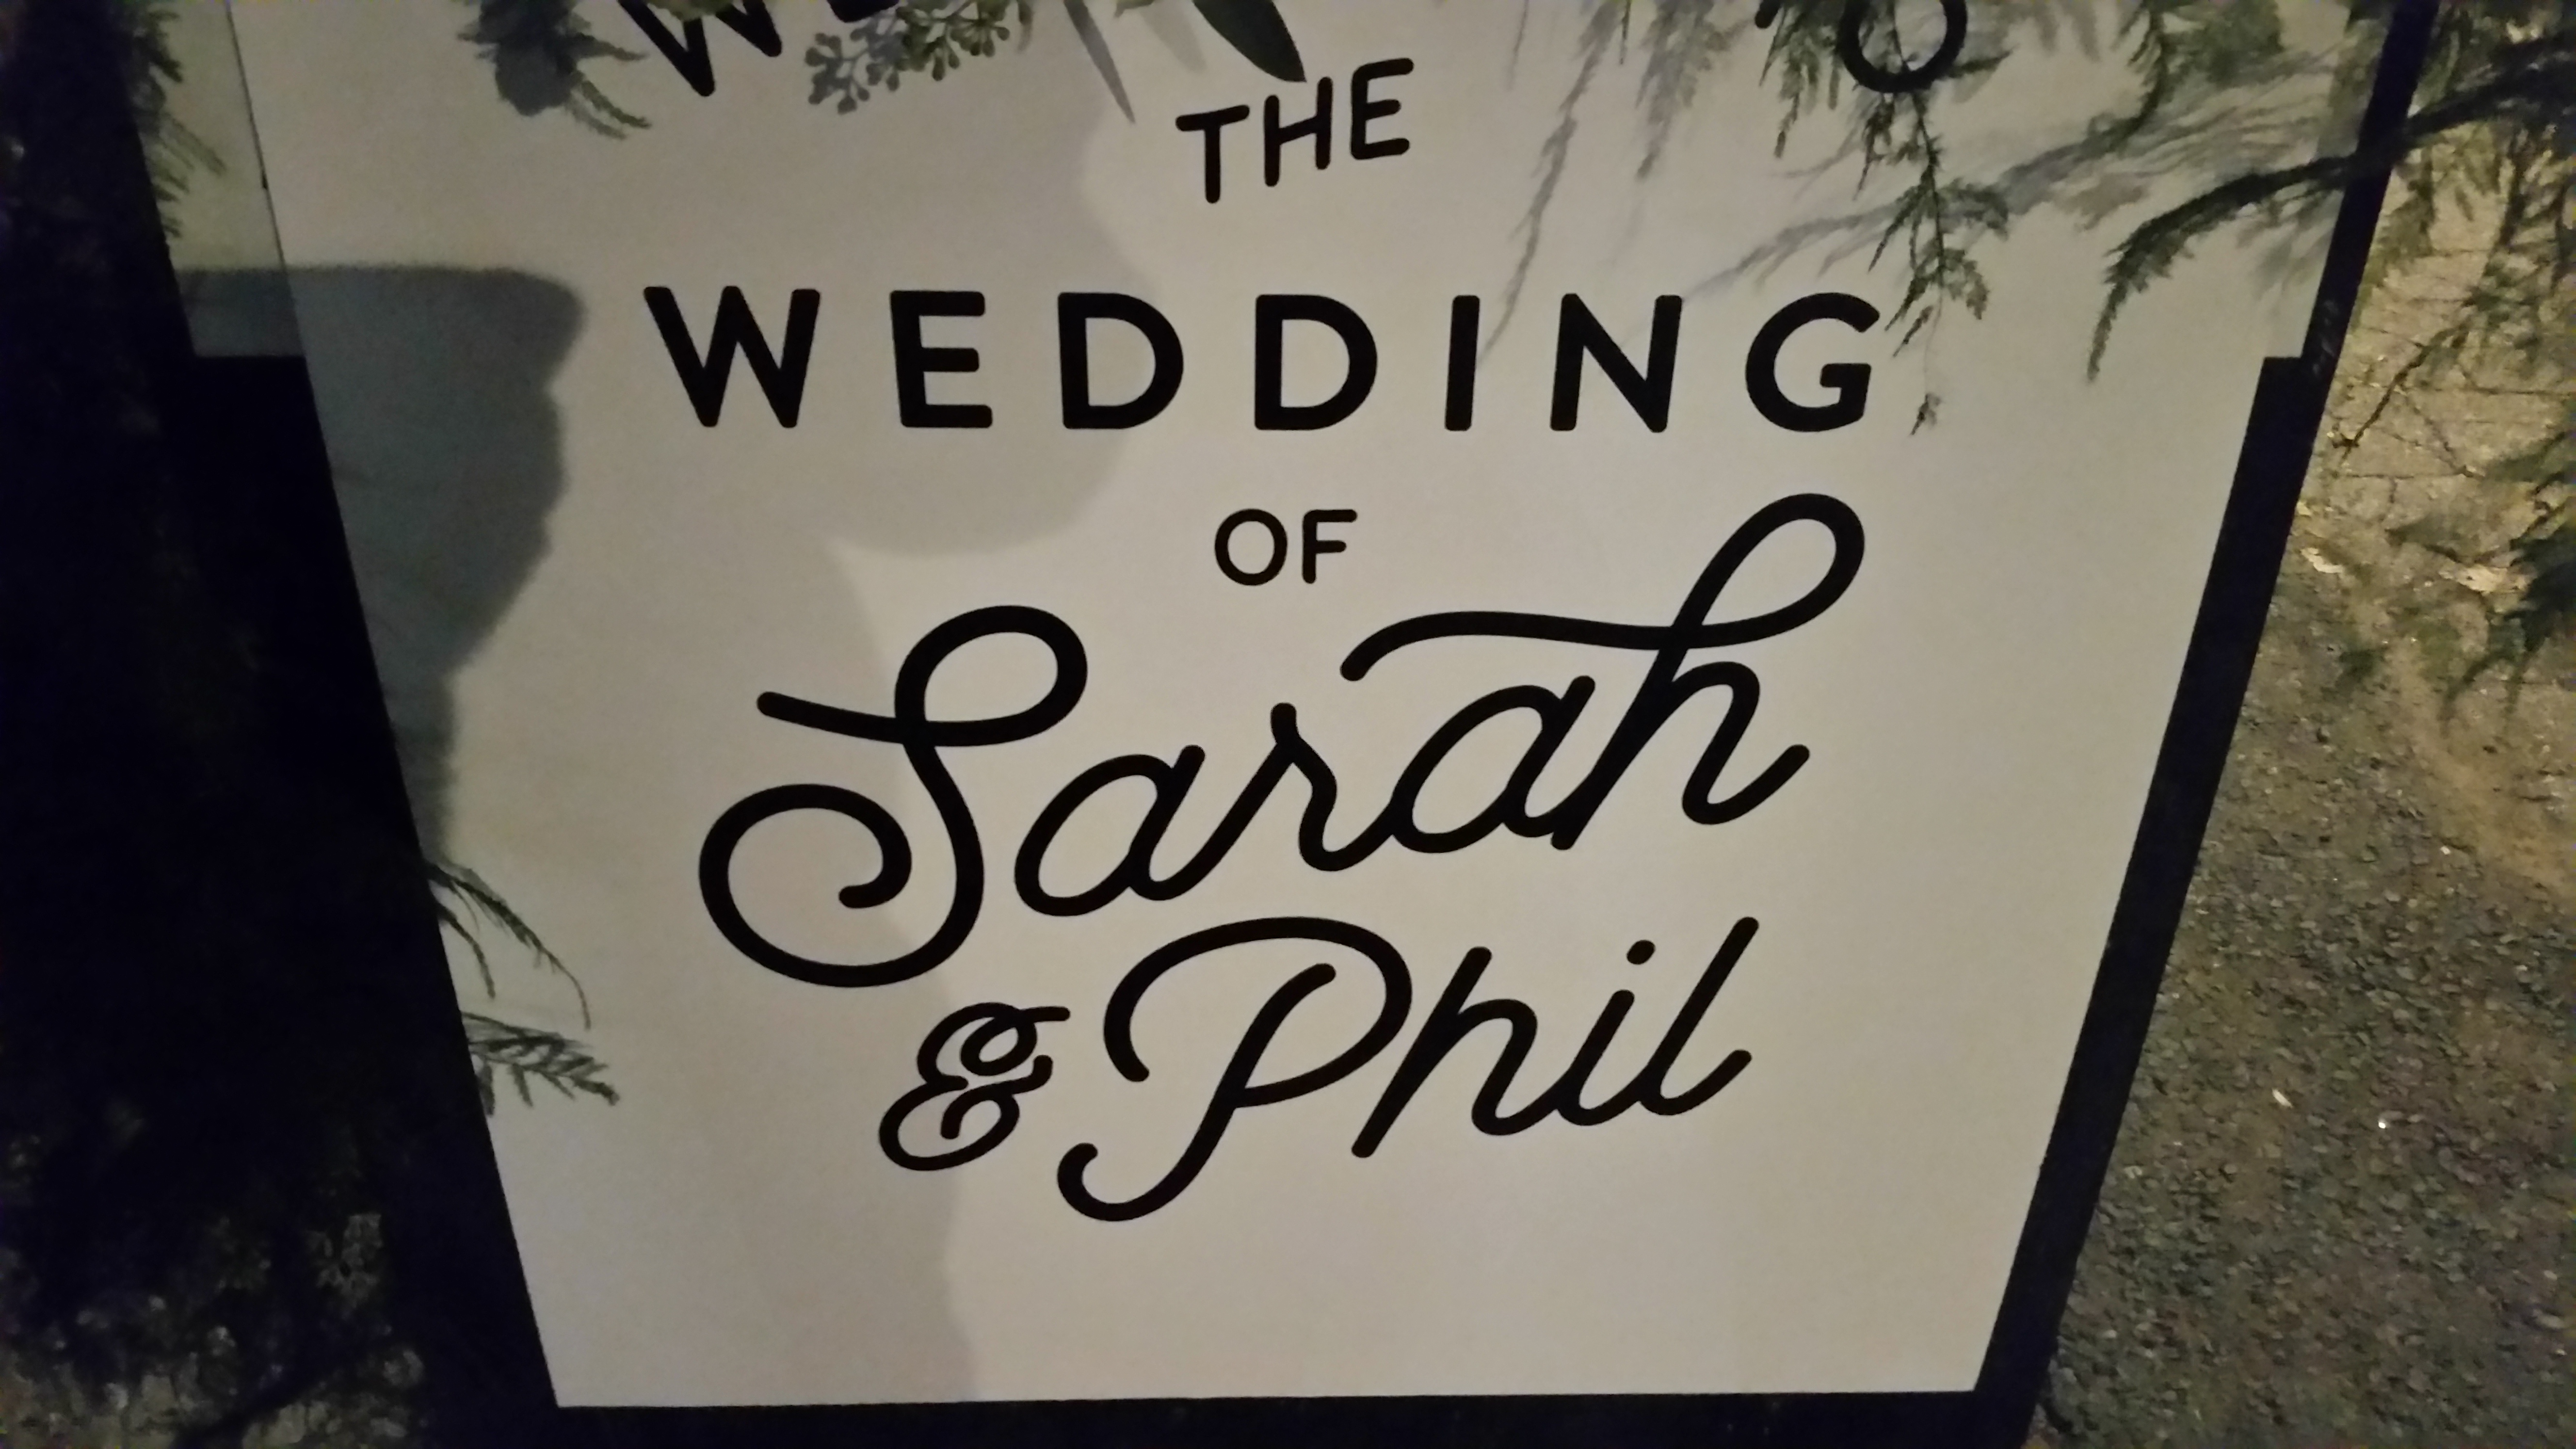 Phil and Sarahs wedding!